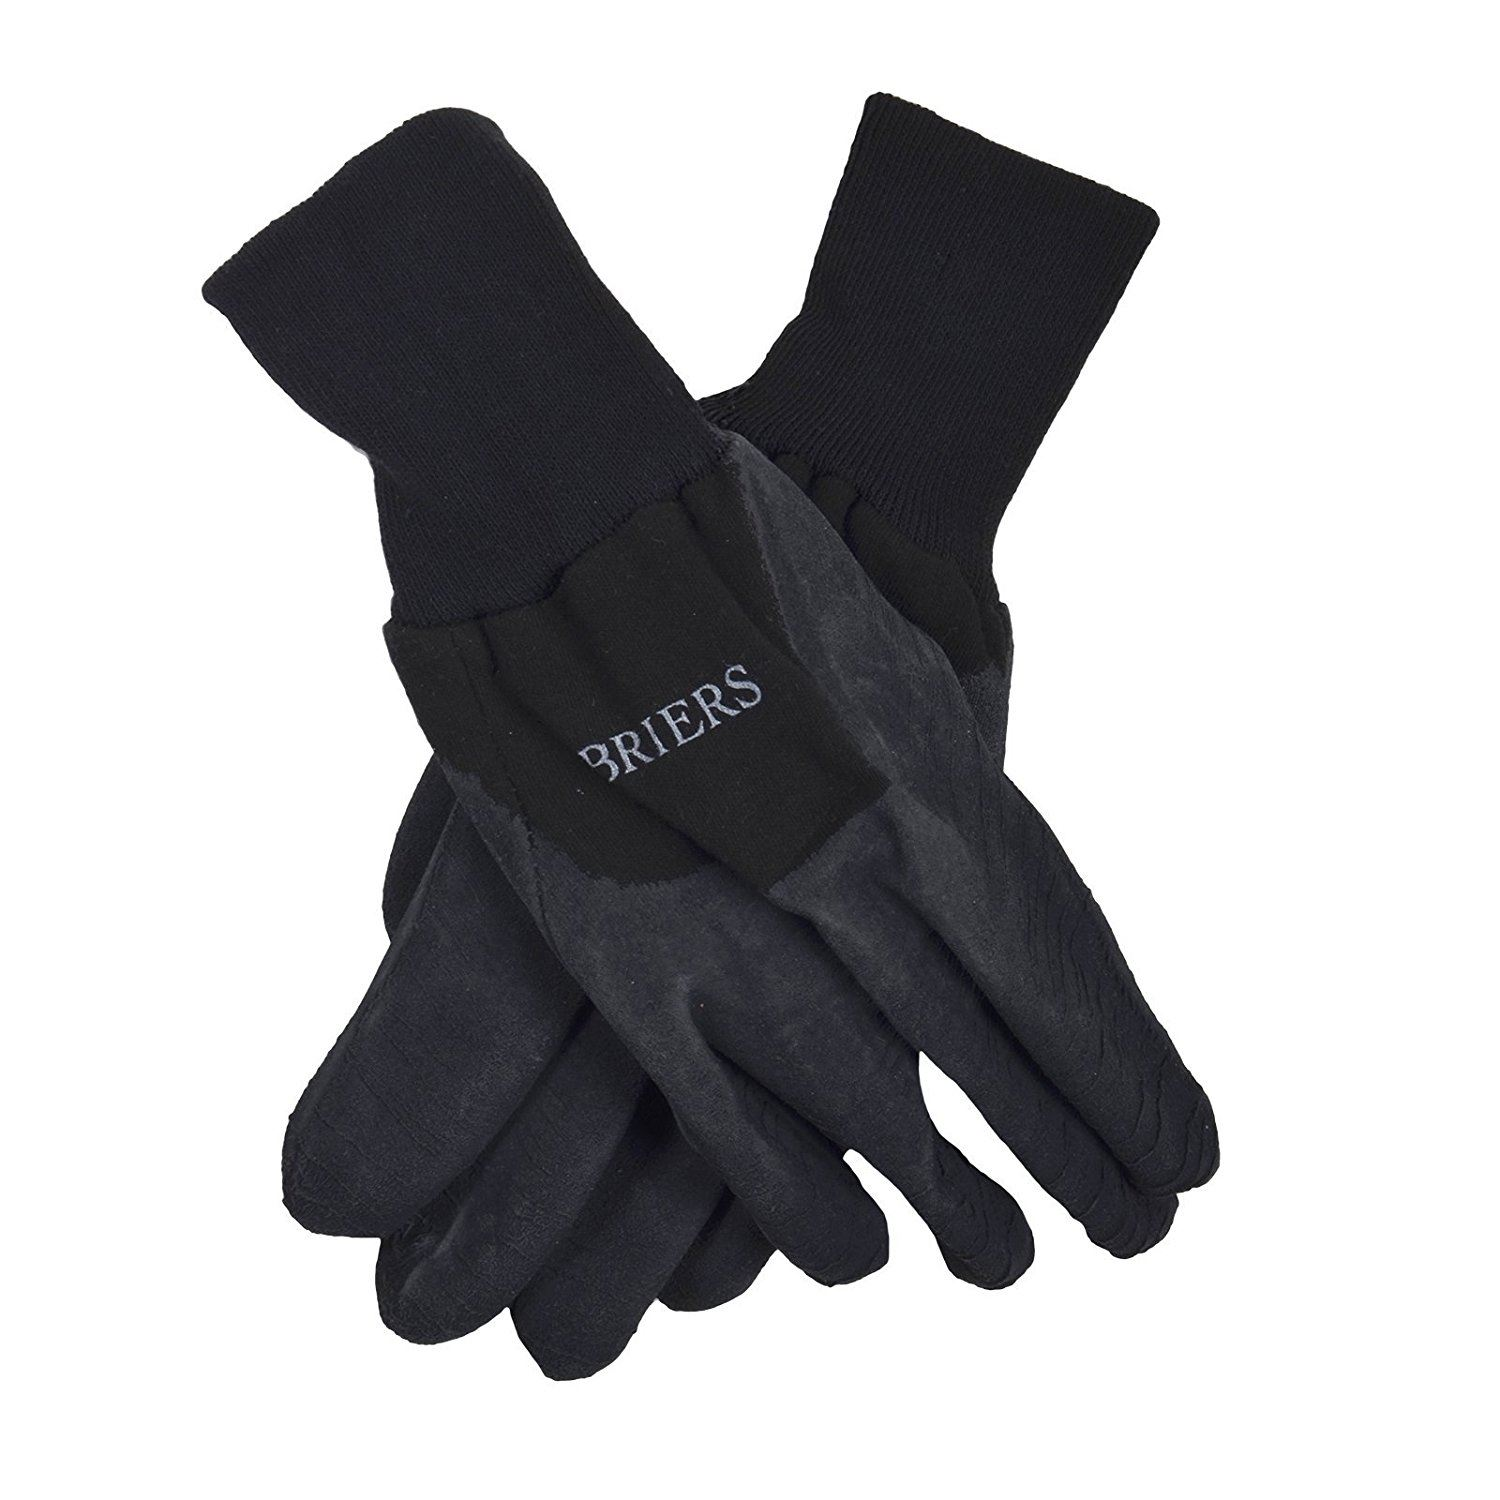 Briers Lined Dual Leather Garden Gloves Black//White  Garden Gloves ** Reduced **